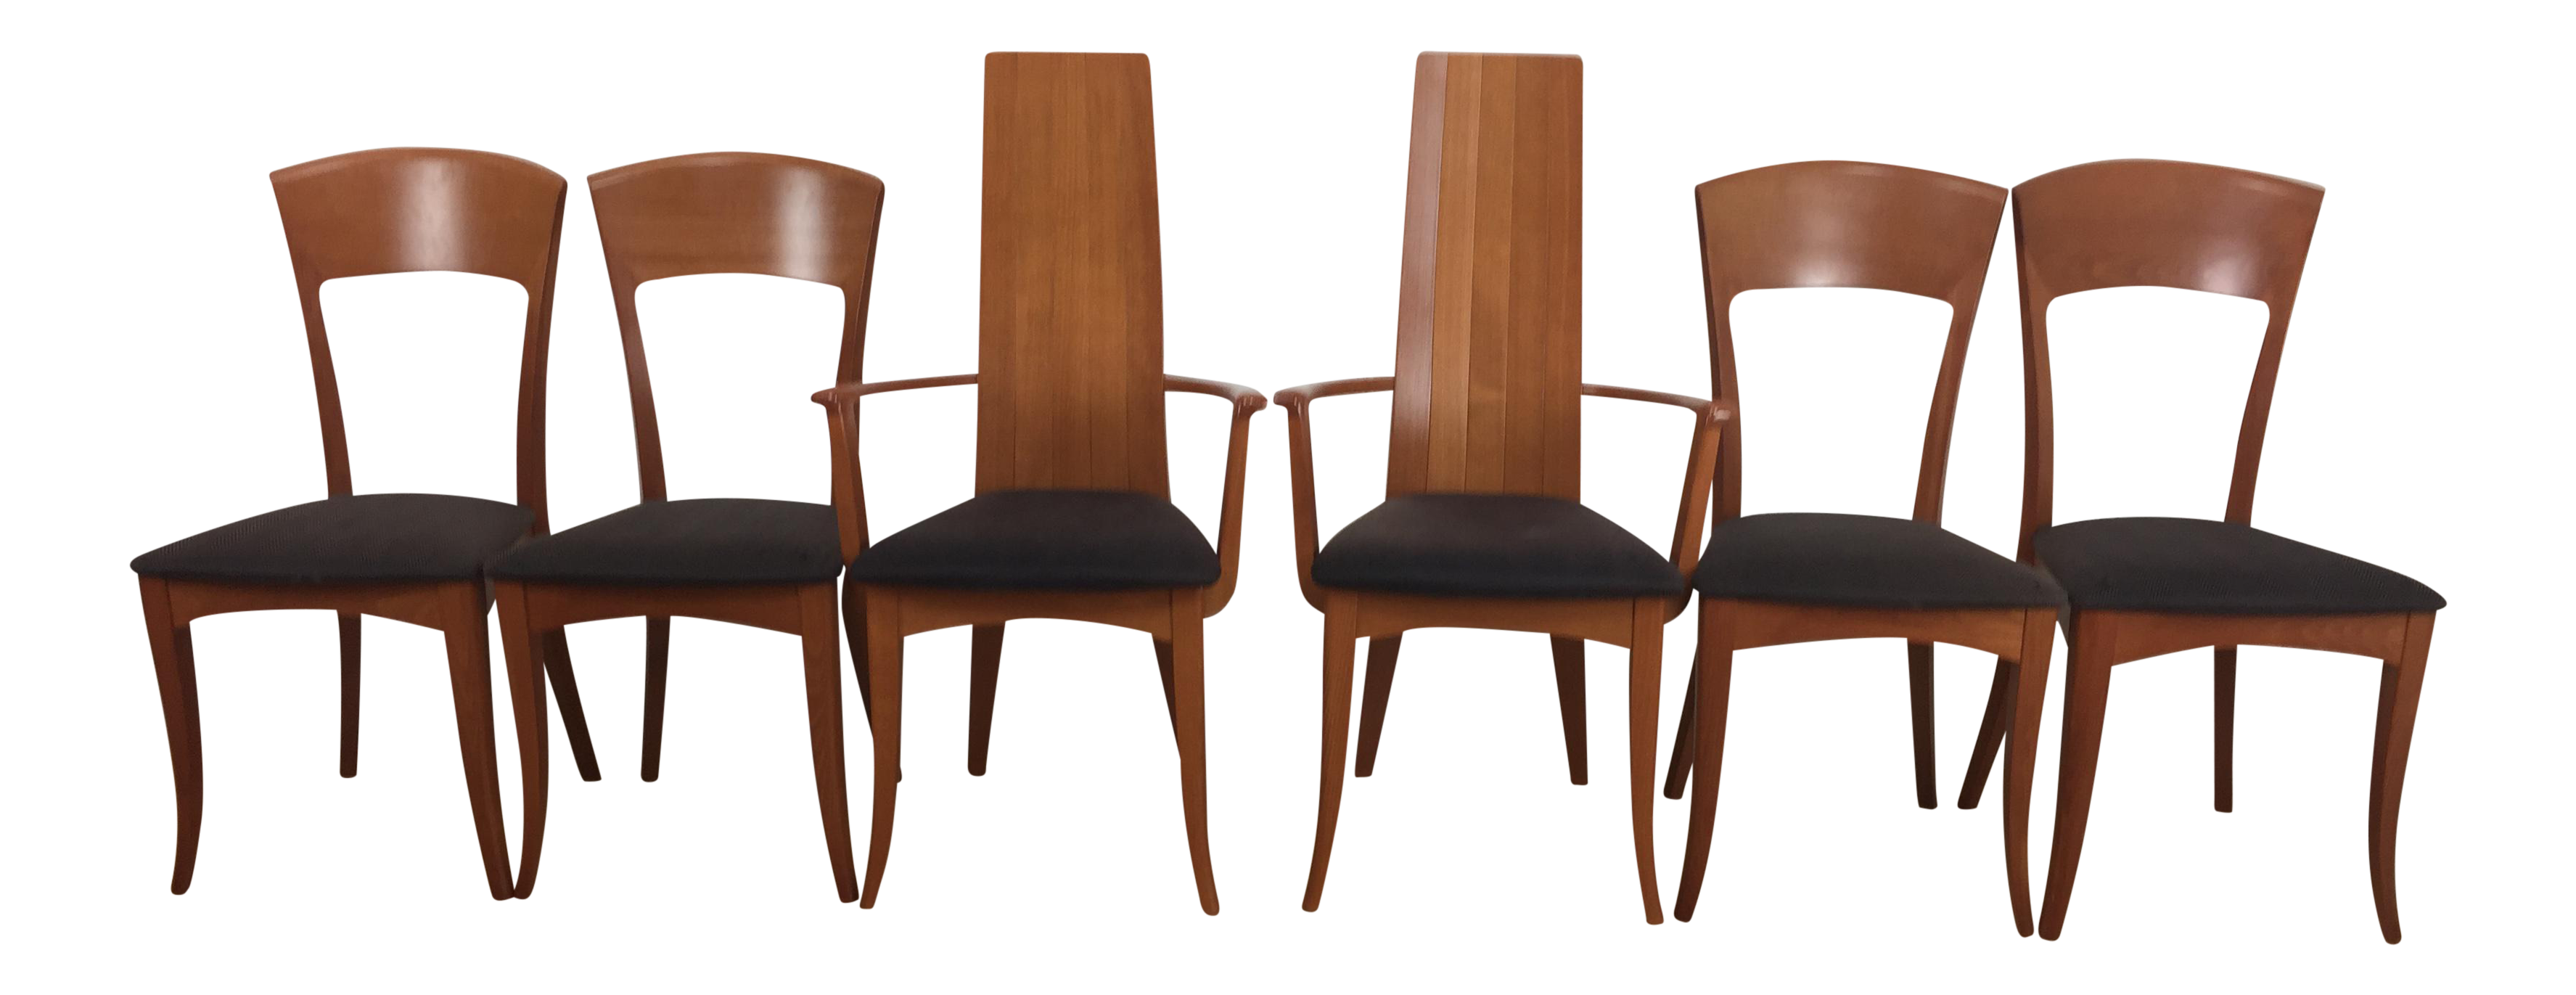 image of a sibau italian midcentury modern dining chairs set of 6